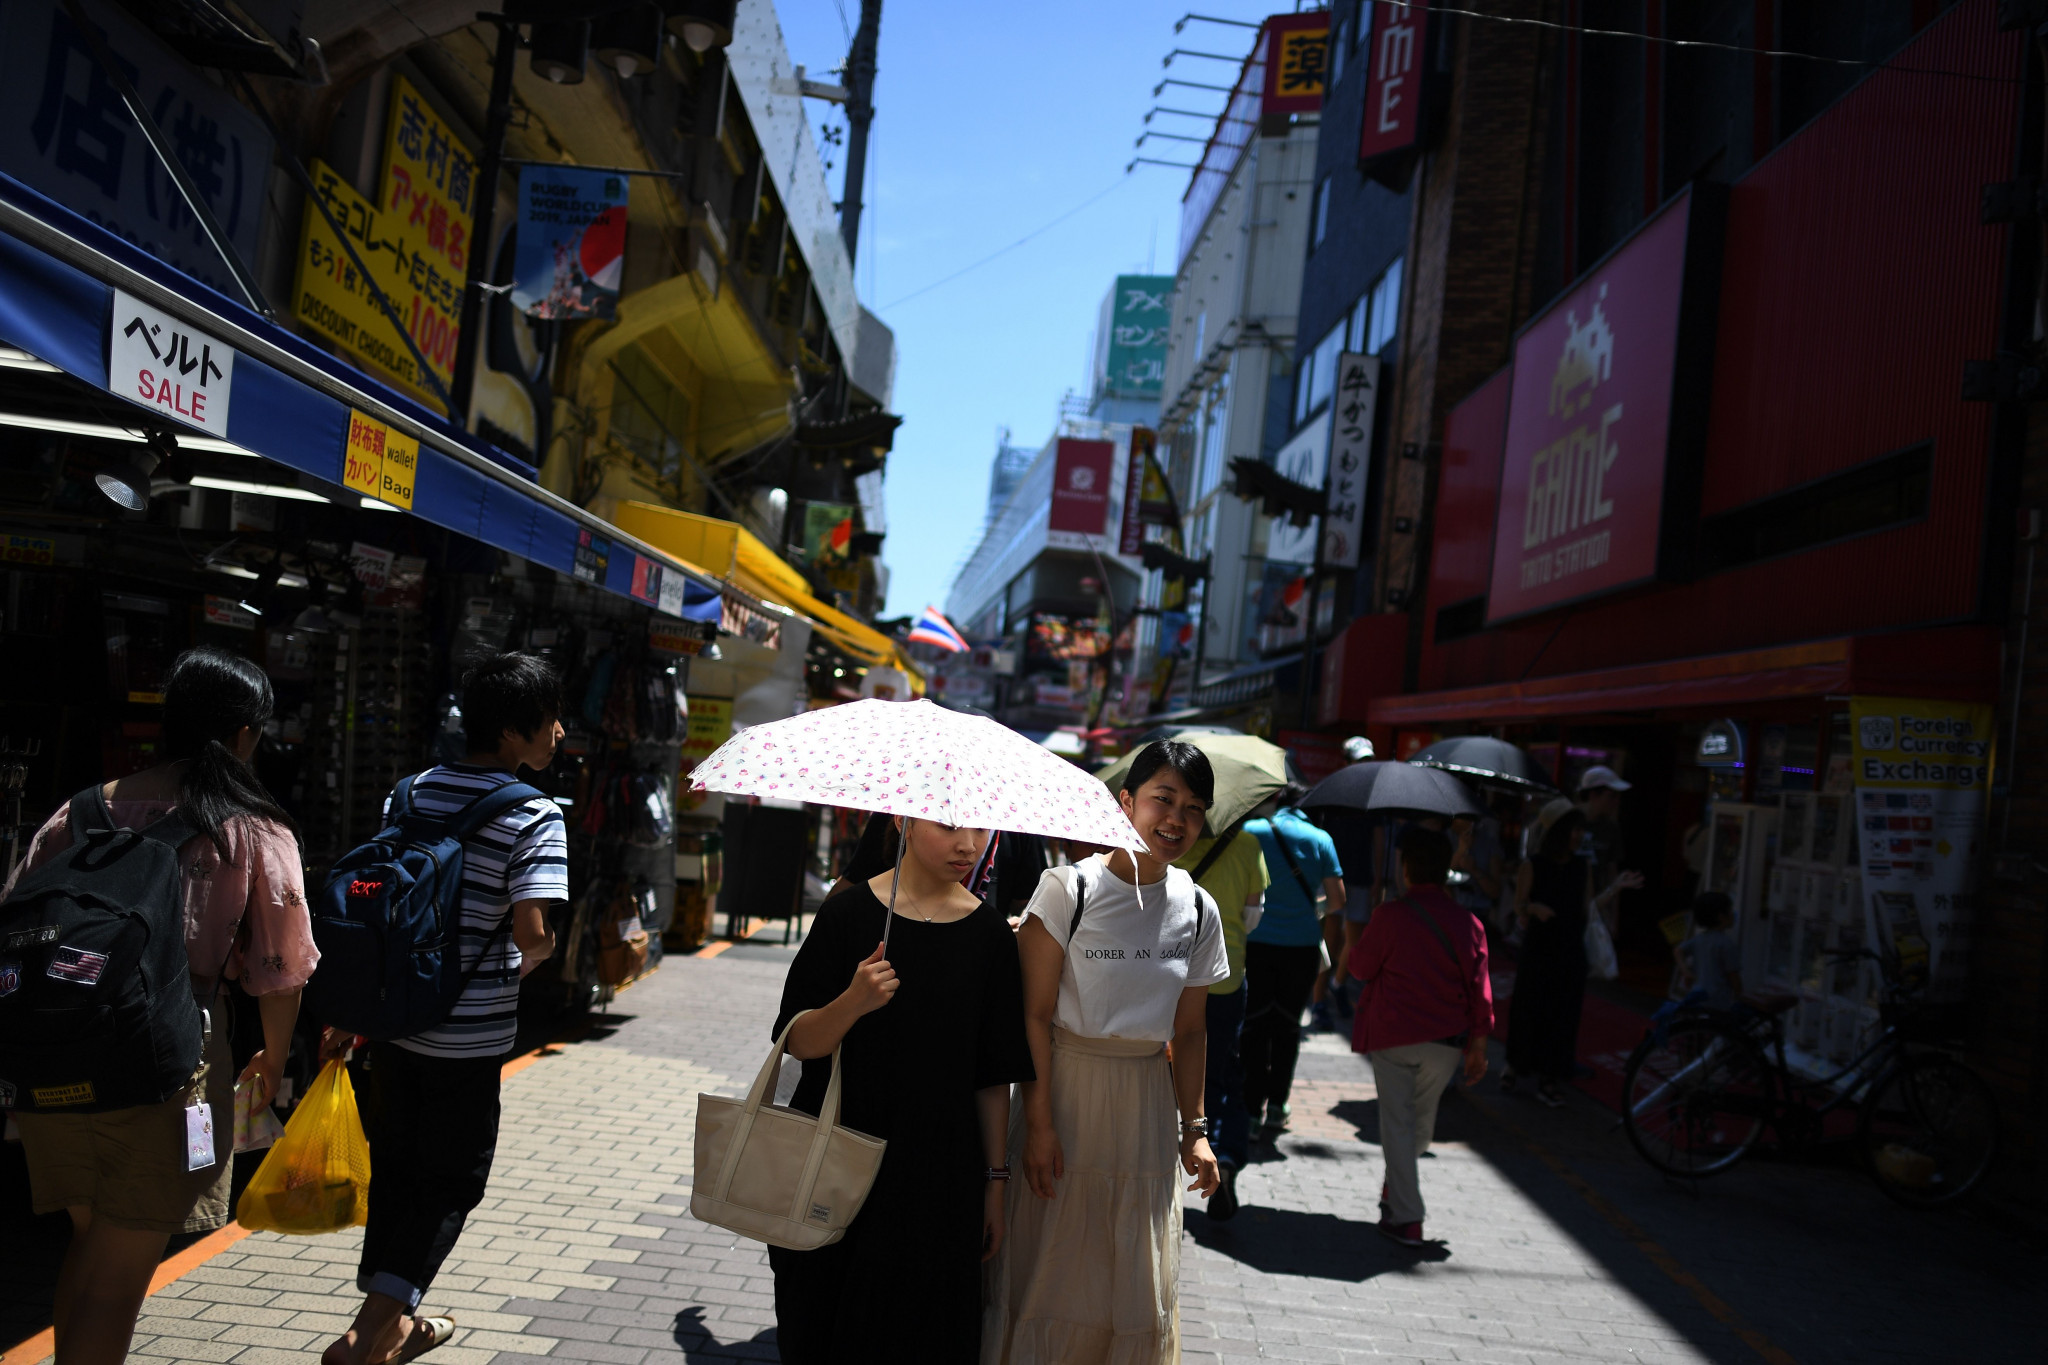 Japanese residents have used umbrellas to help shield themselves from the heat as temperatures soared beyond 30 Celsius, causing tens of deaths and thousands of people to be taken to hospital ©Getty Images